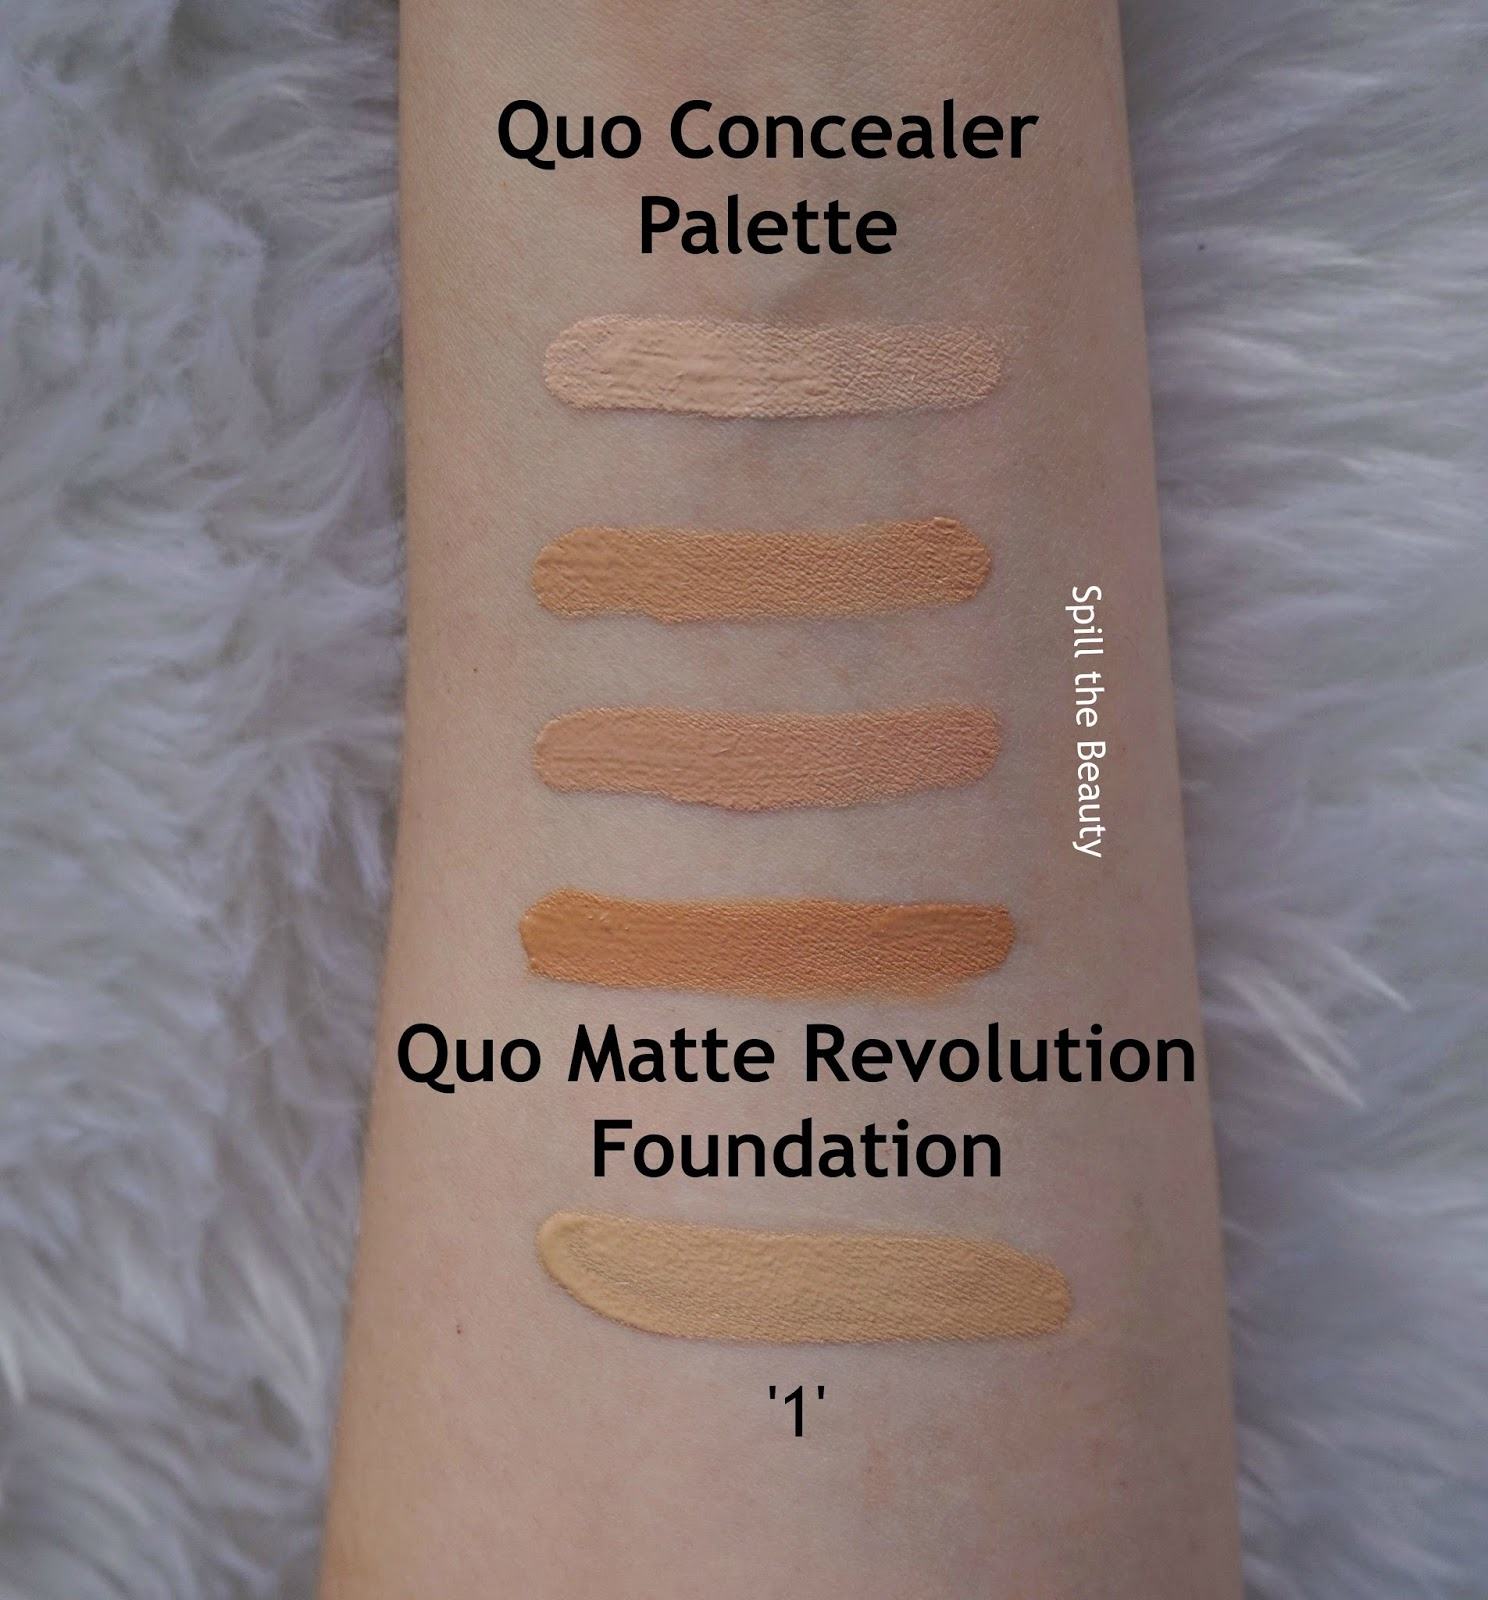 quo 2017 makeup review swatches nourish and prime hydrating primer matte revolution foundation 1 setting spray concealer palette